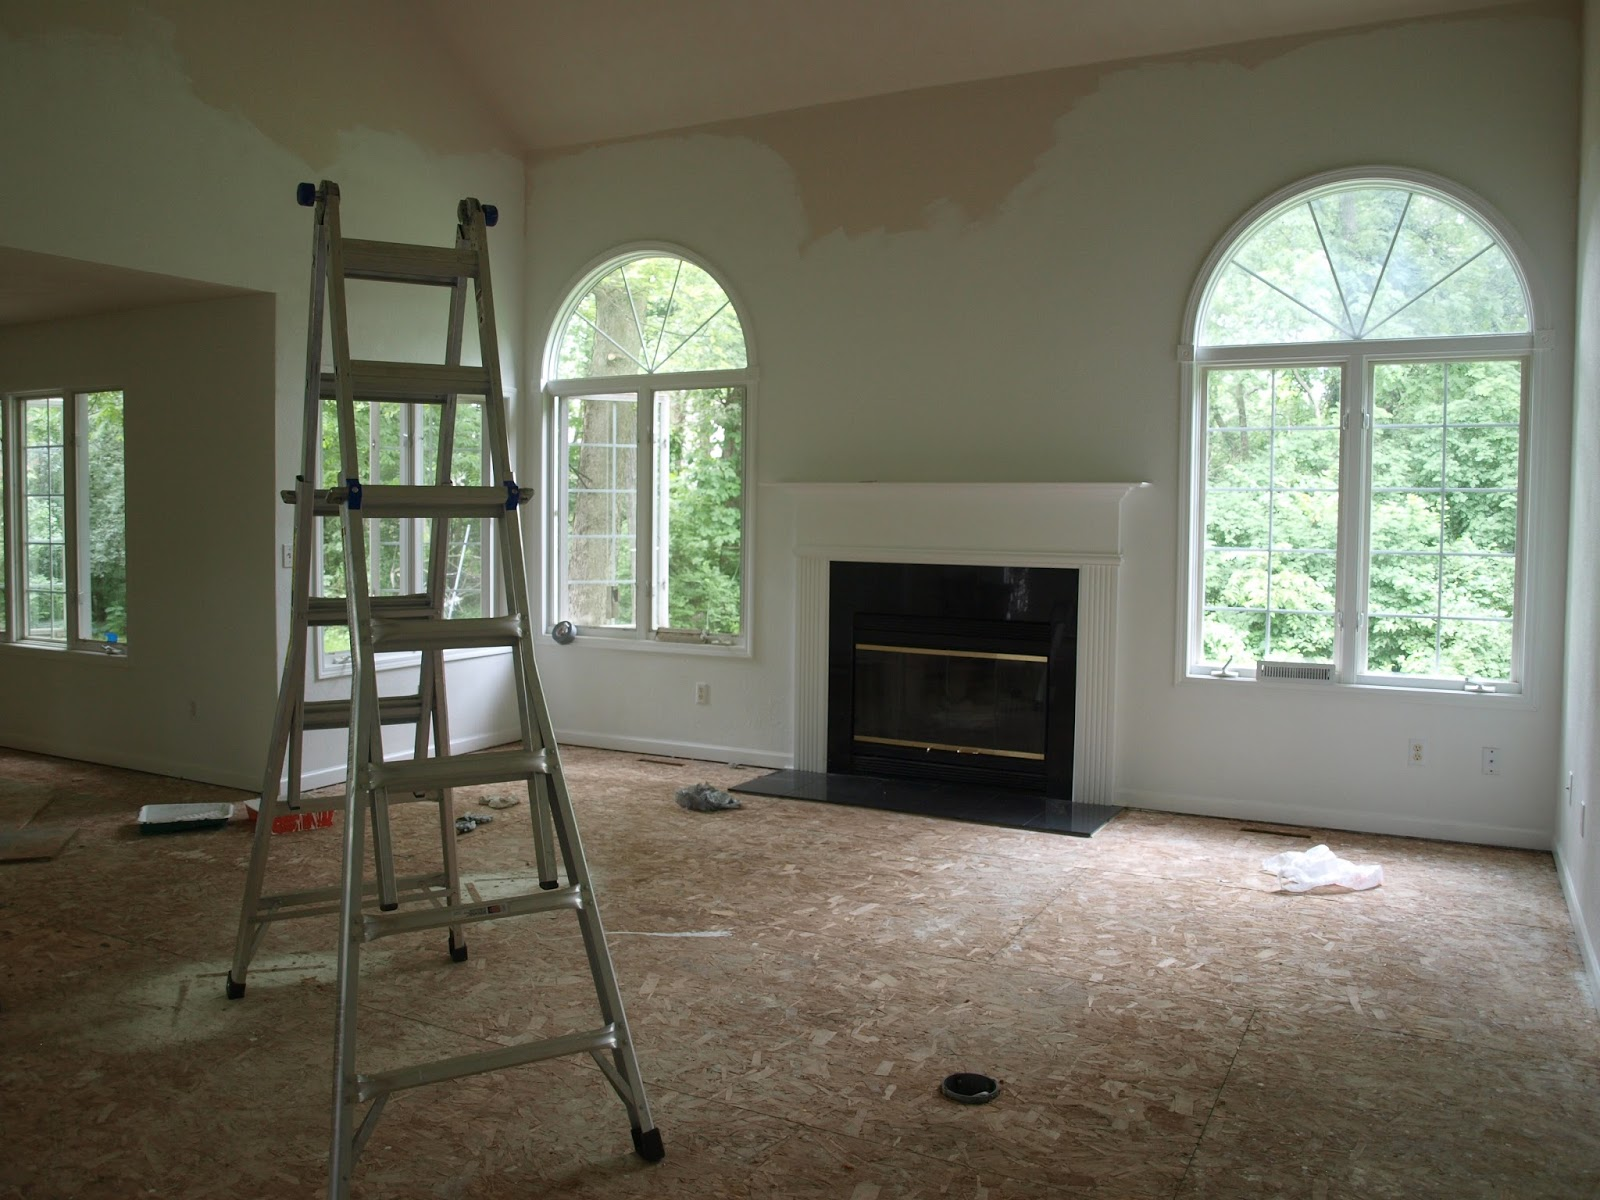 My Home Renovation: Hello Lovely Fixer Upper {week 40}